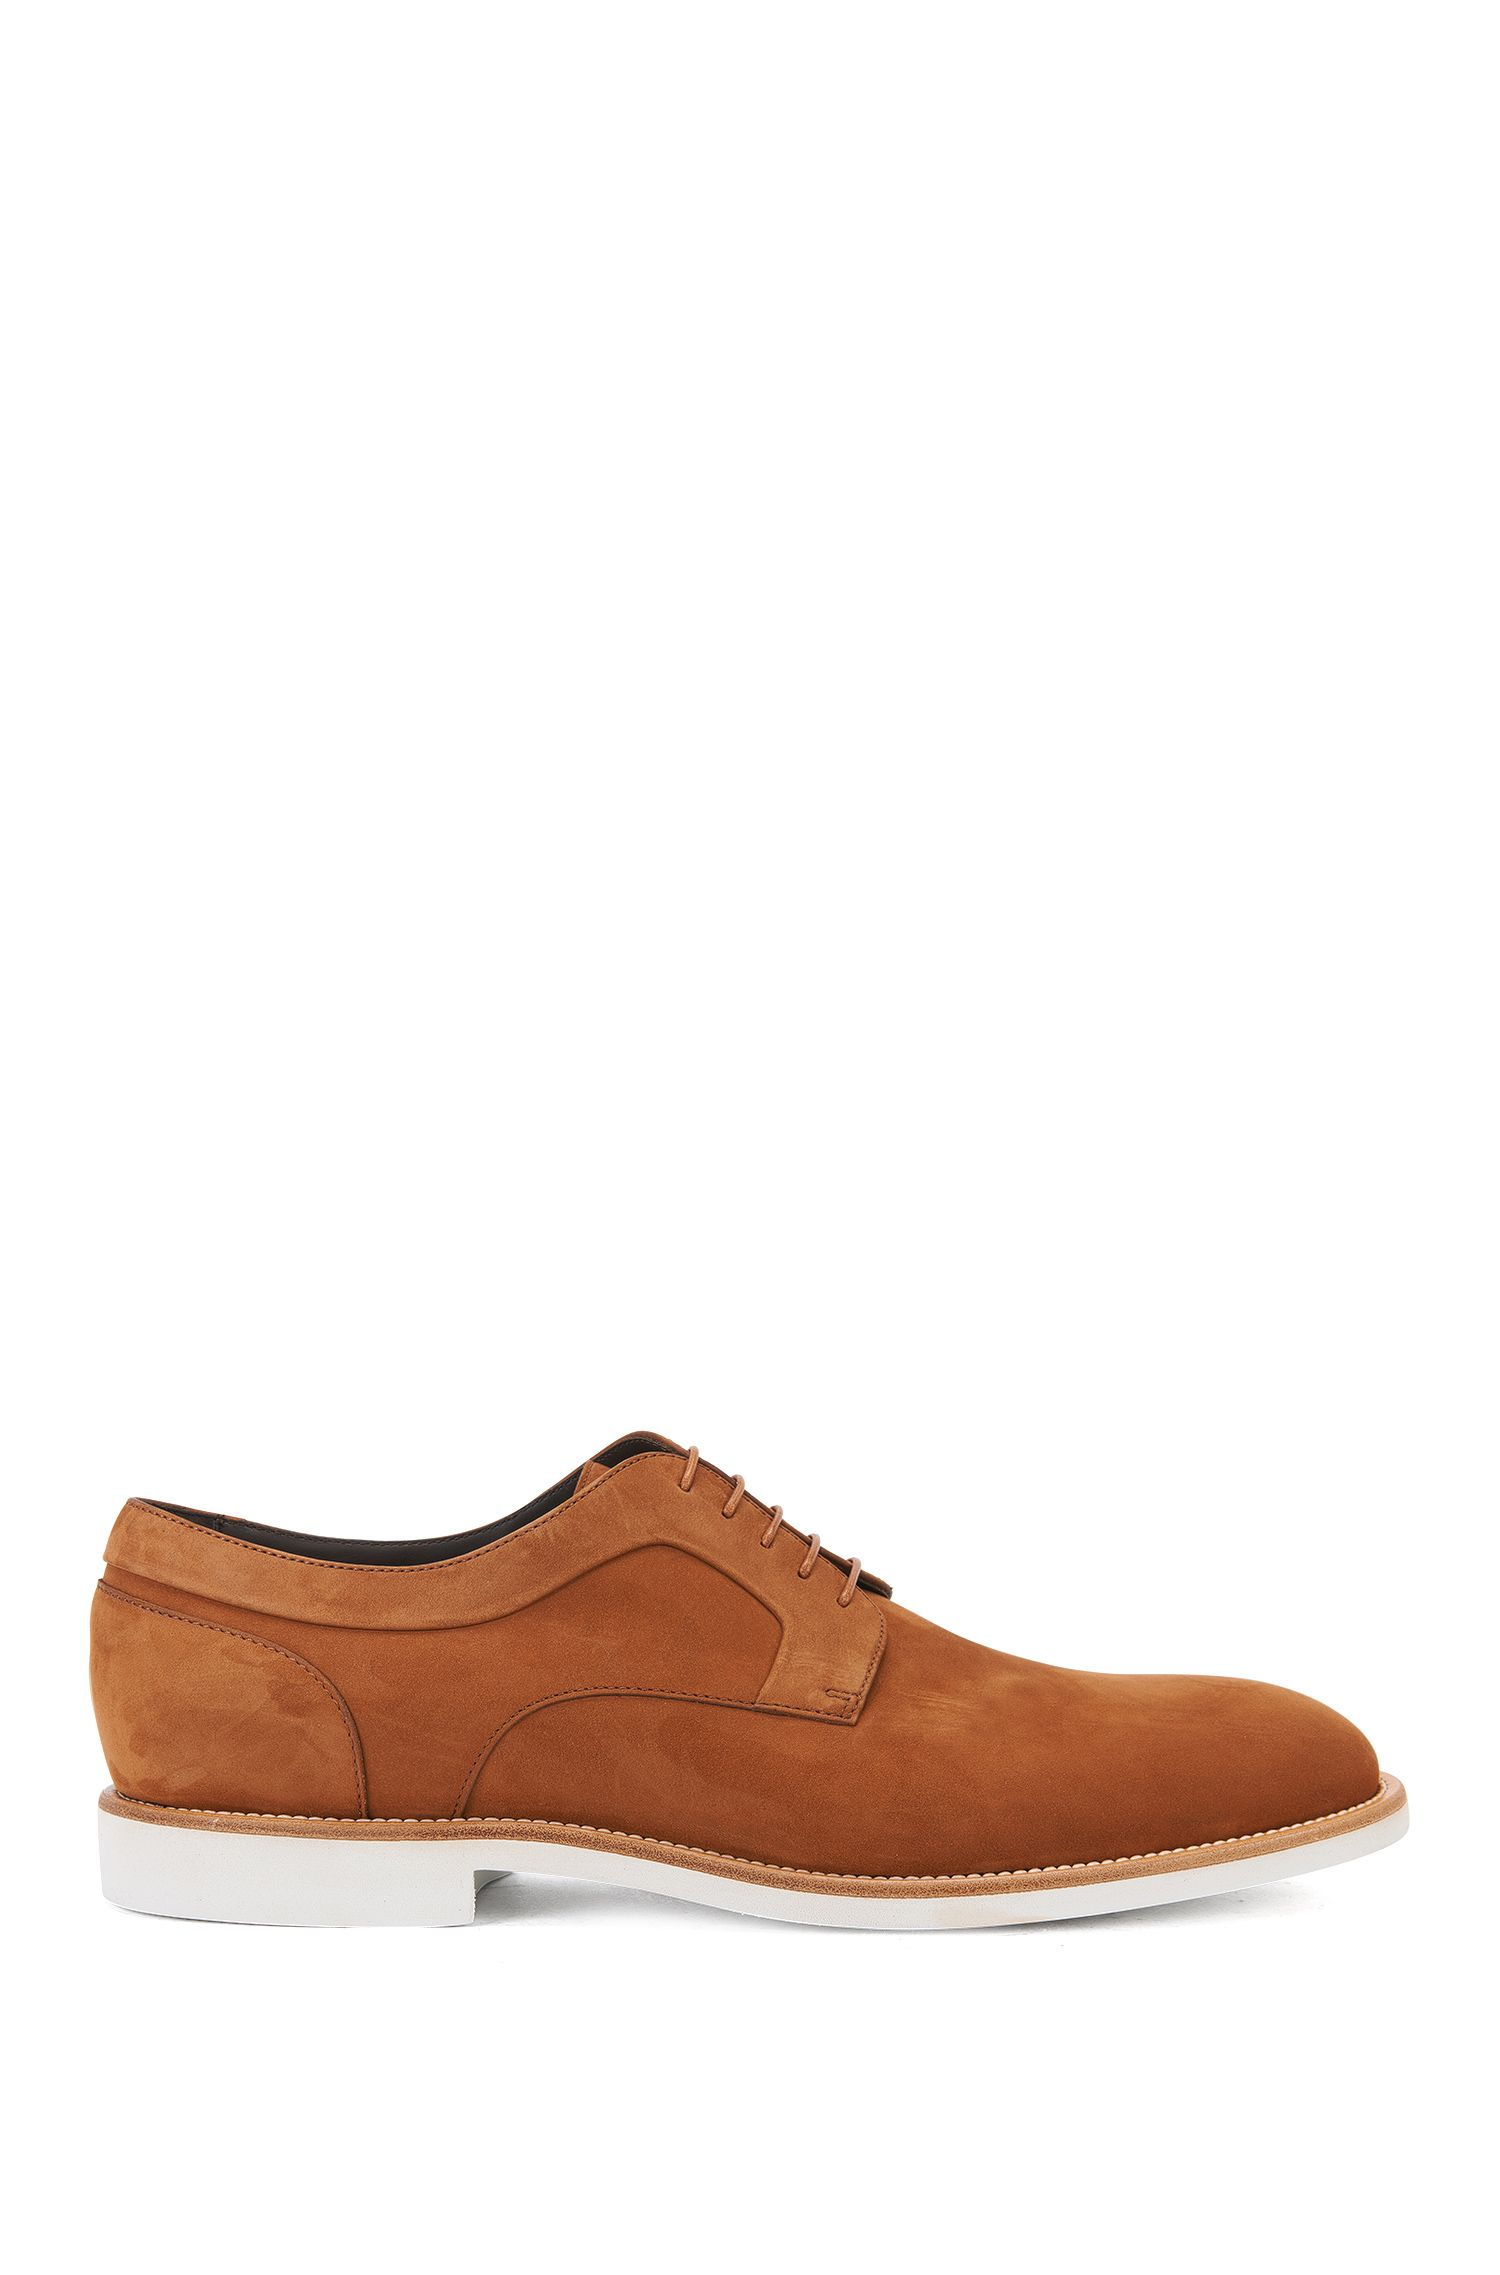 Italian Nubuck Derby Shoe | Ocean Derb Nu, Brown